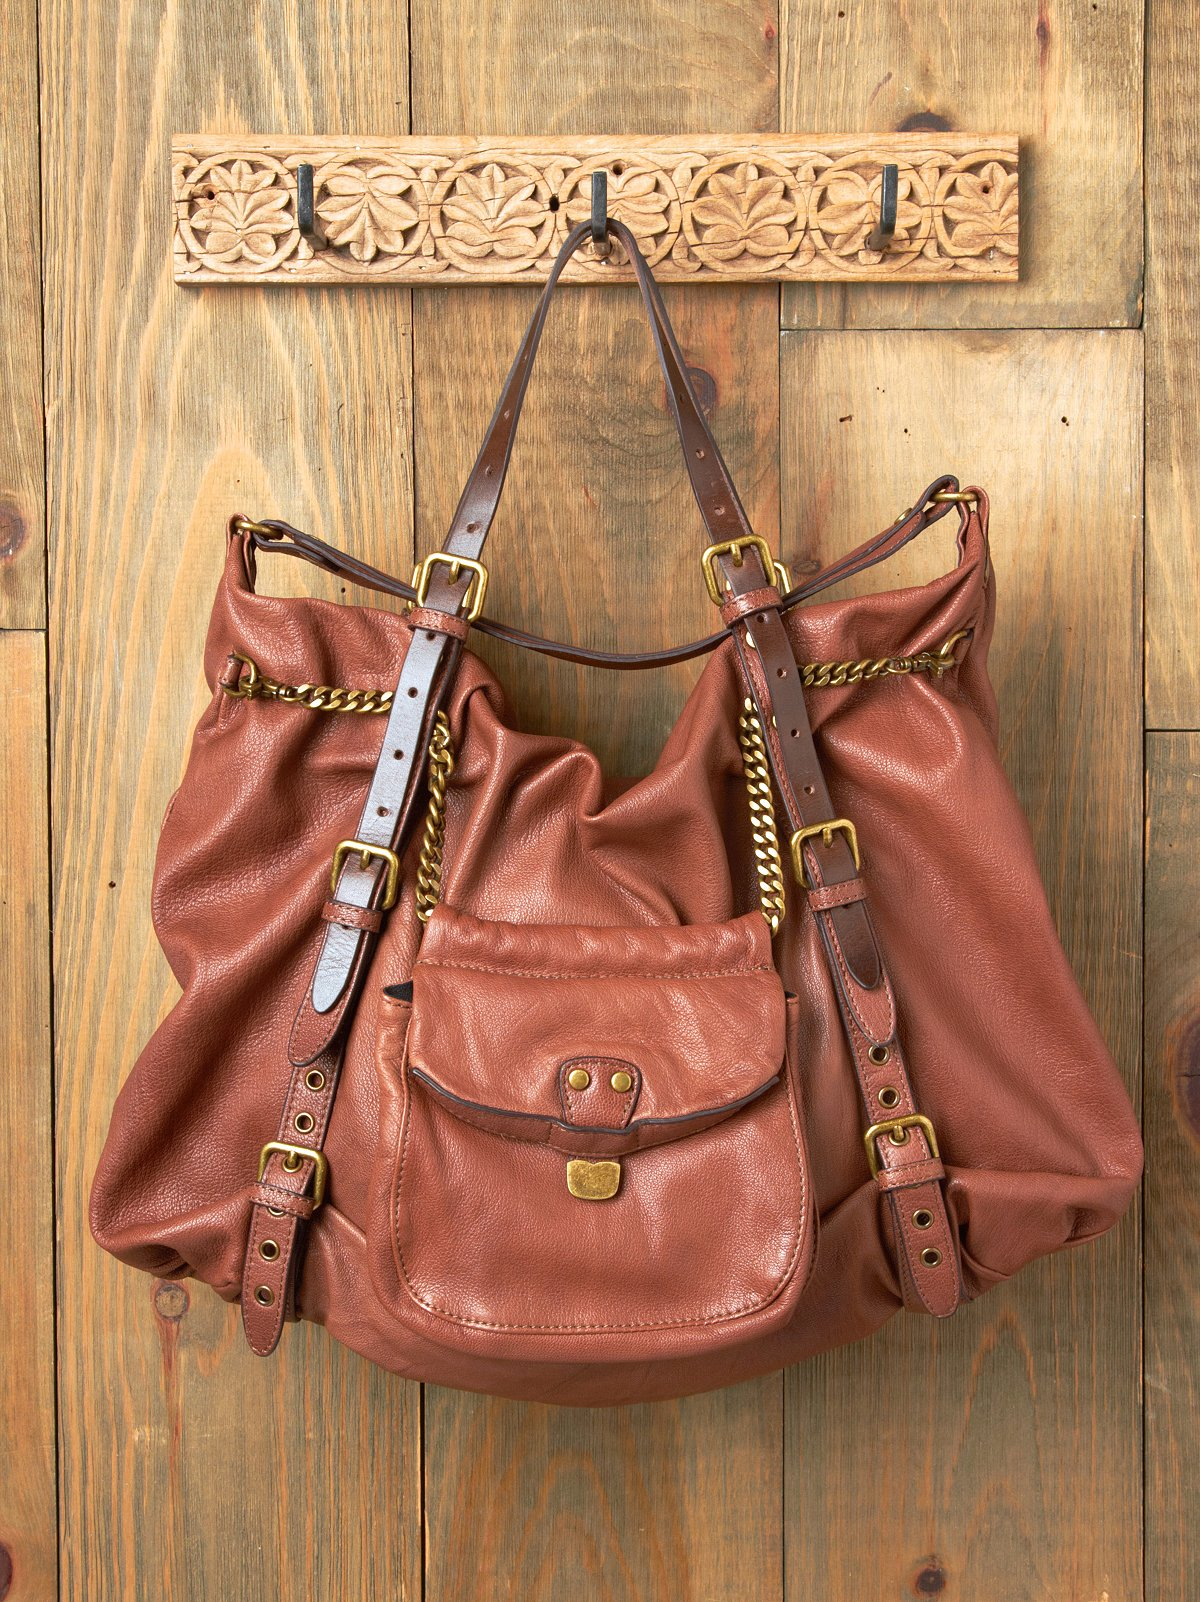 Chain Reaction Leather Bag